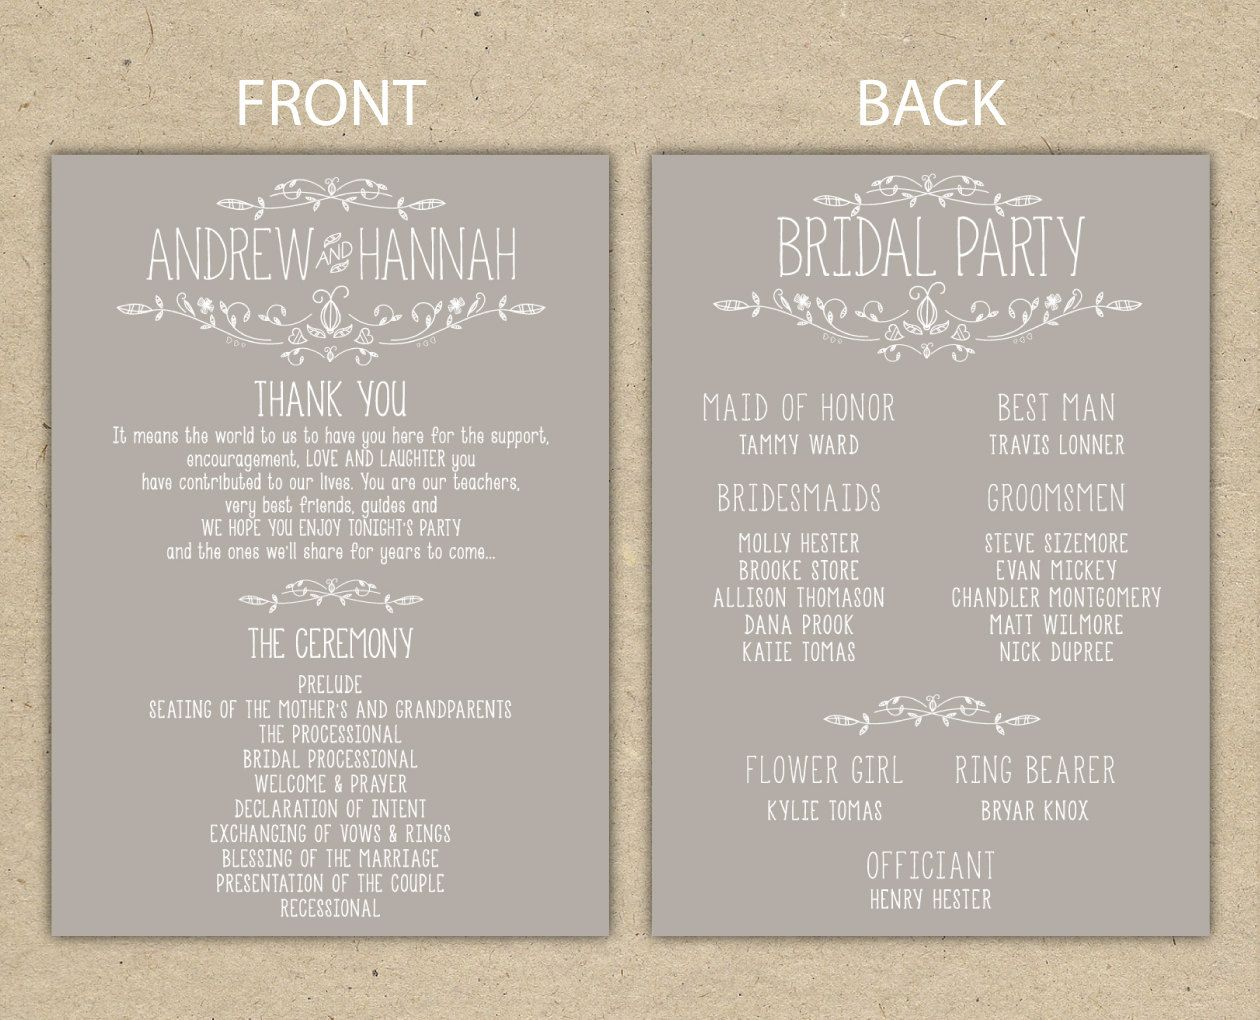 Wedding Program, wedding reception, wedding thank you. | WEDDING ...